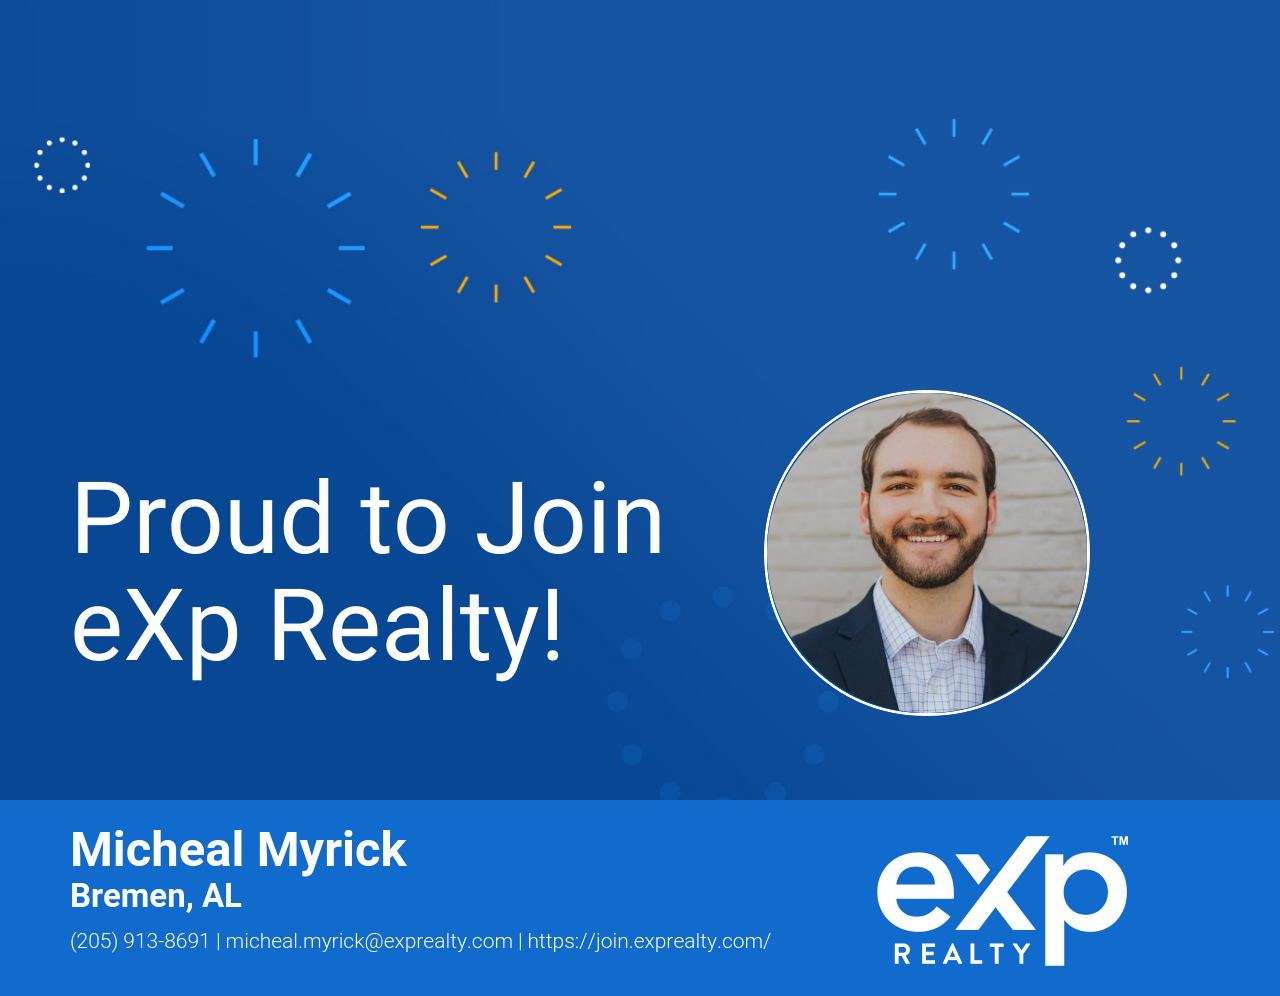 Micheal Myrick Joined eXp Realty!